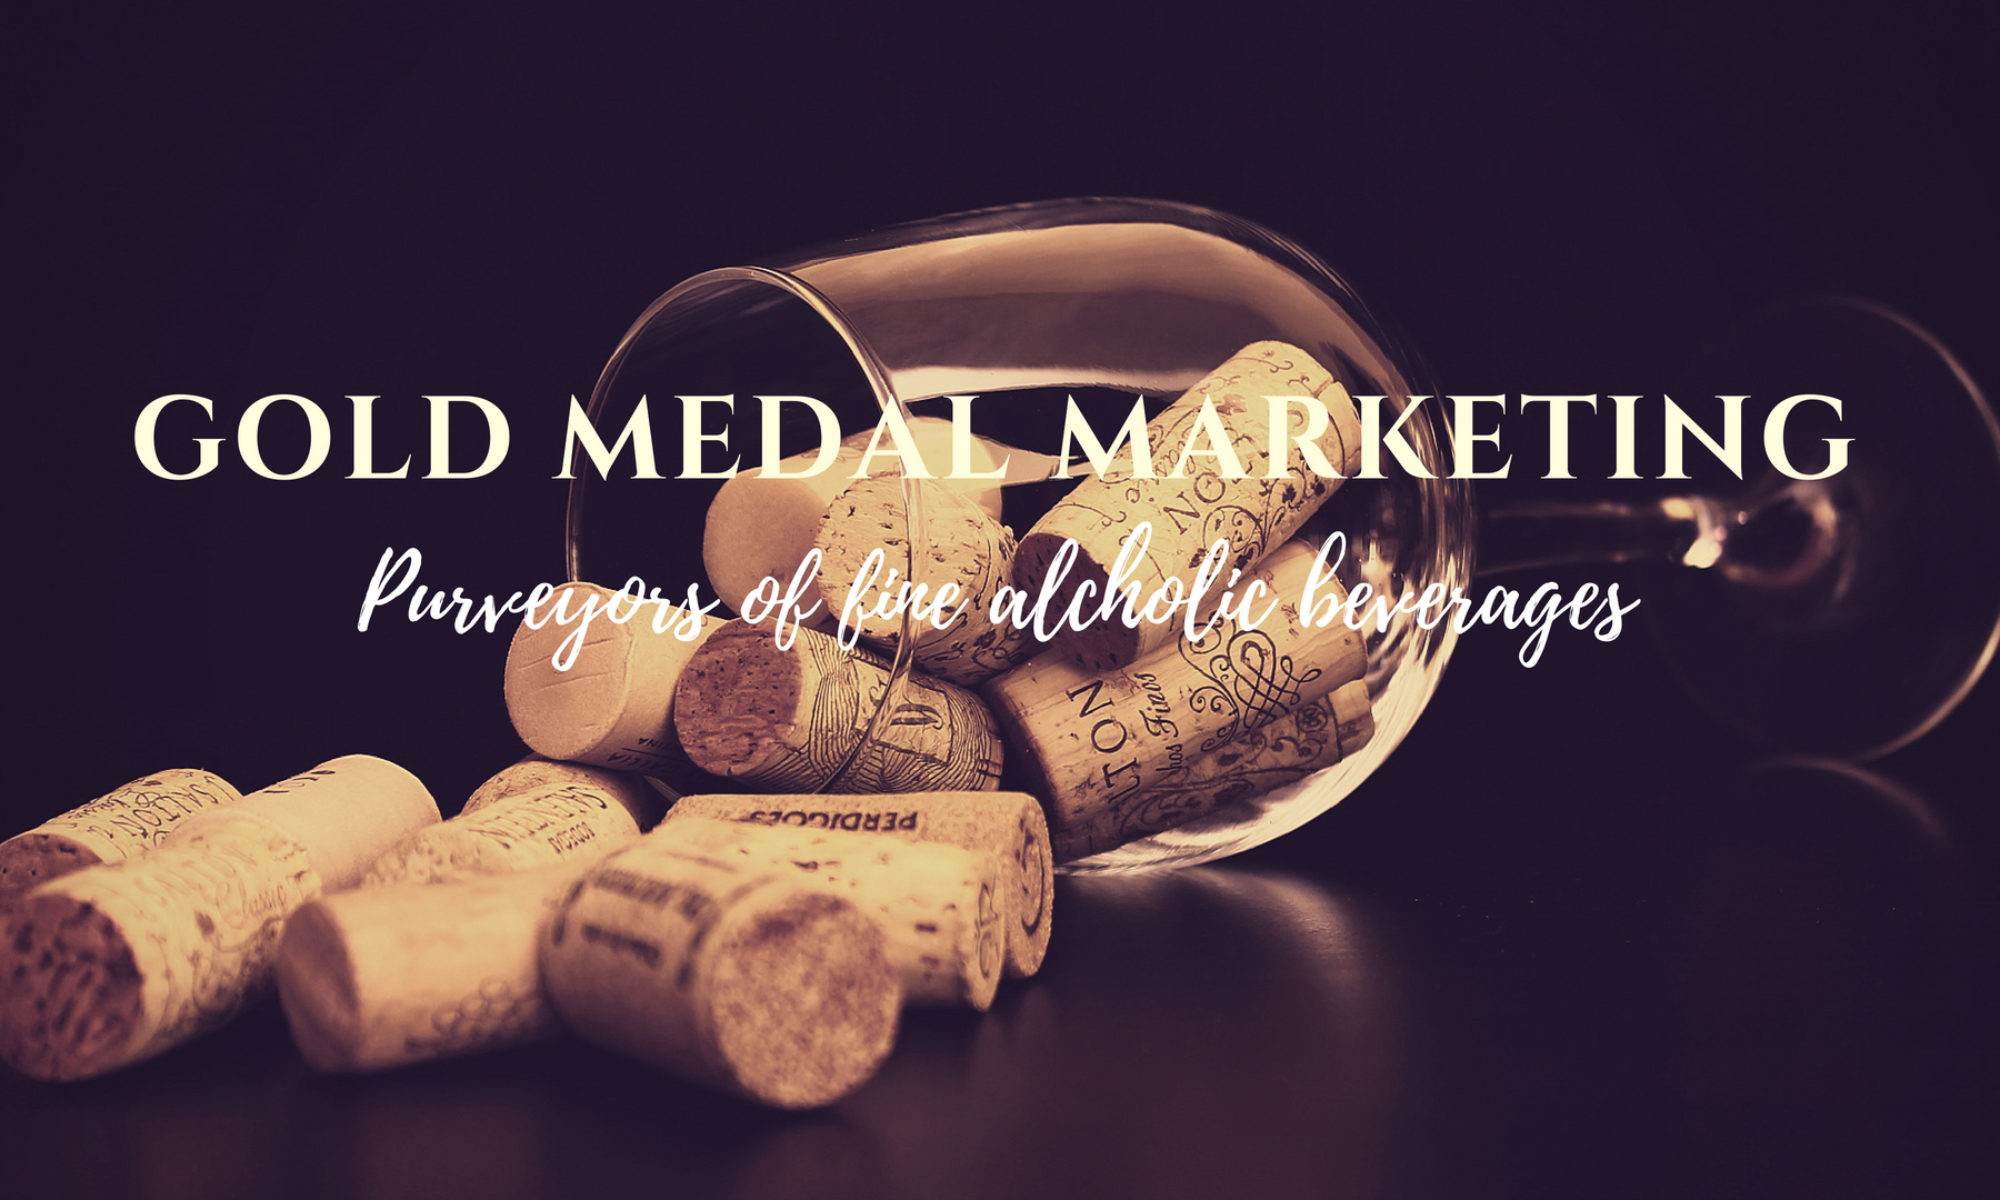 GOLD MEDAL MARKETING INC.